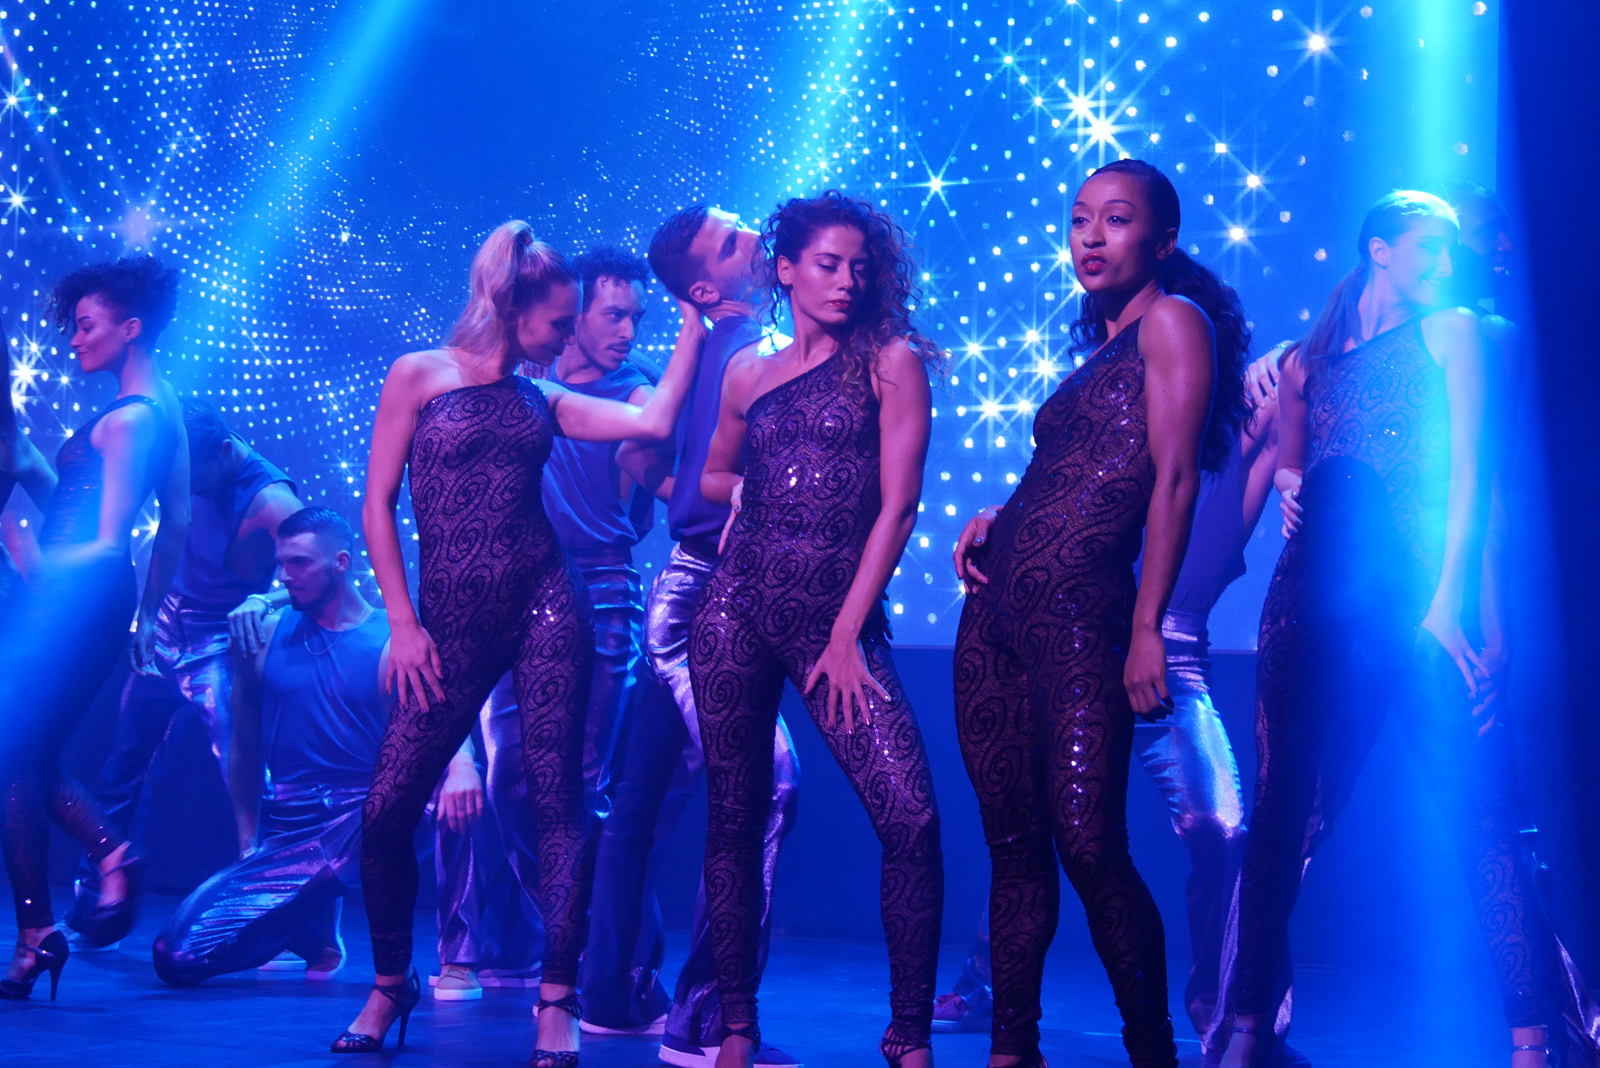 saturday-night-fever-le-spectacle-fievre-du-samedi-soir-troupe-danseuses-comedie-musicale-photo-usofparis-blog